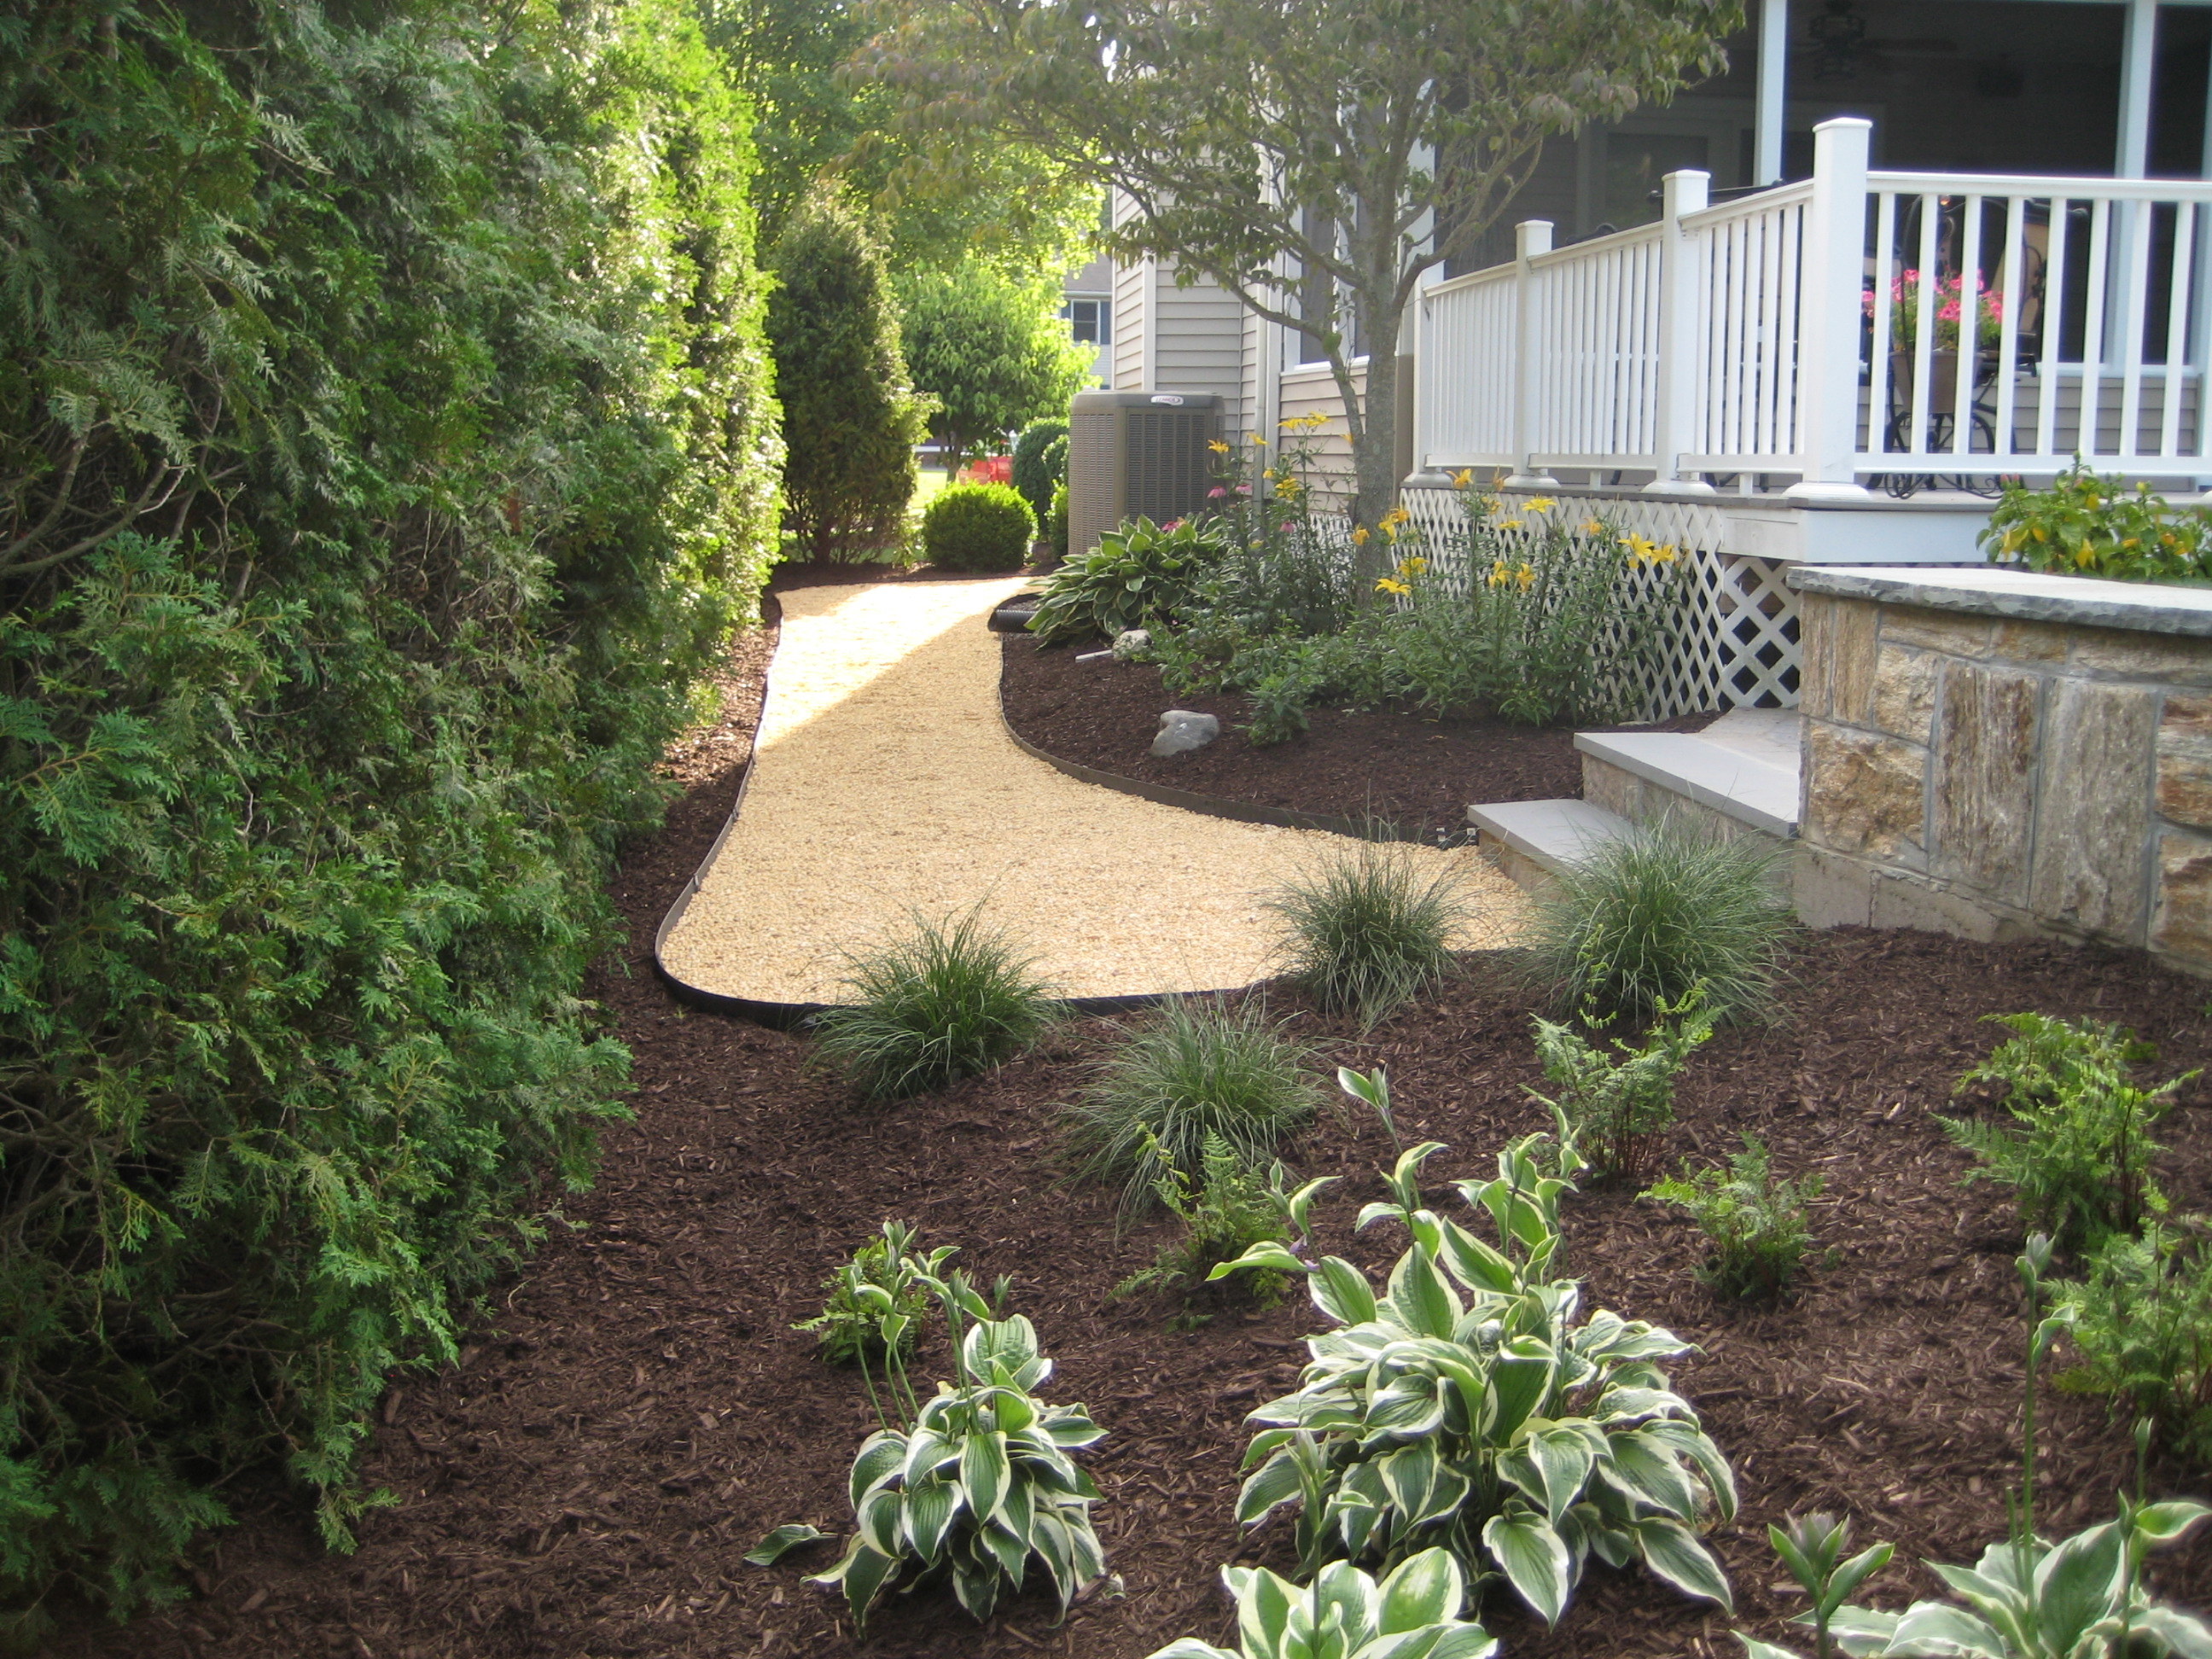 Riccio landscaping tree service in monroe ct 06468 for Tree and garden services